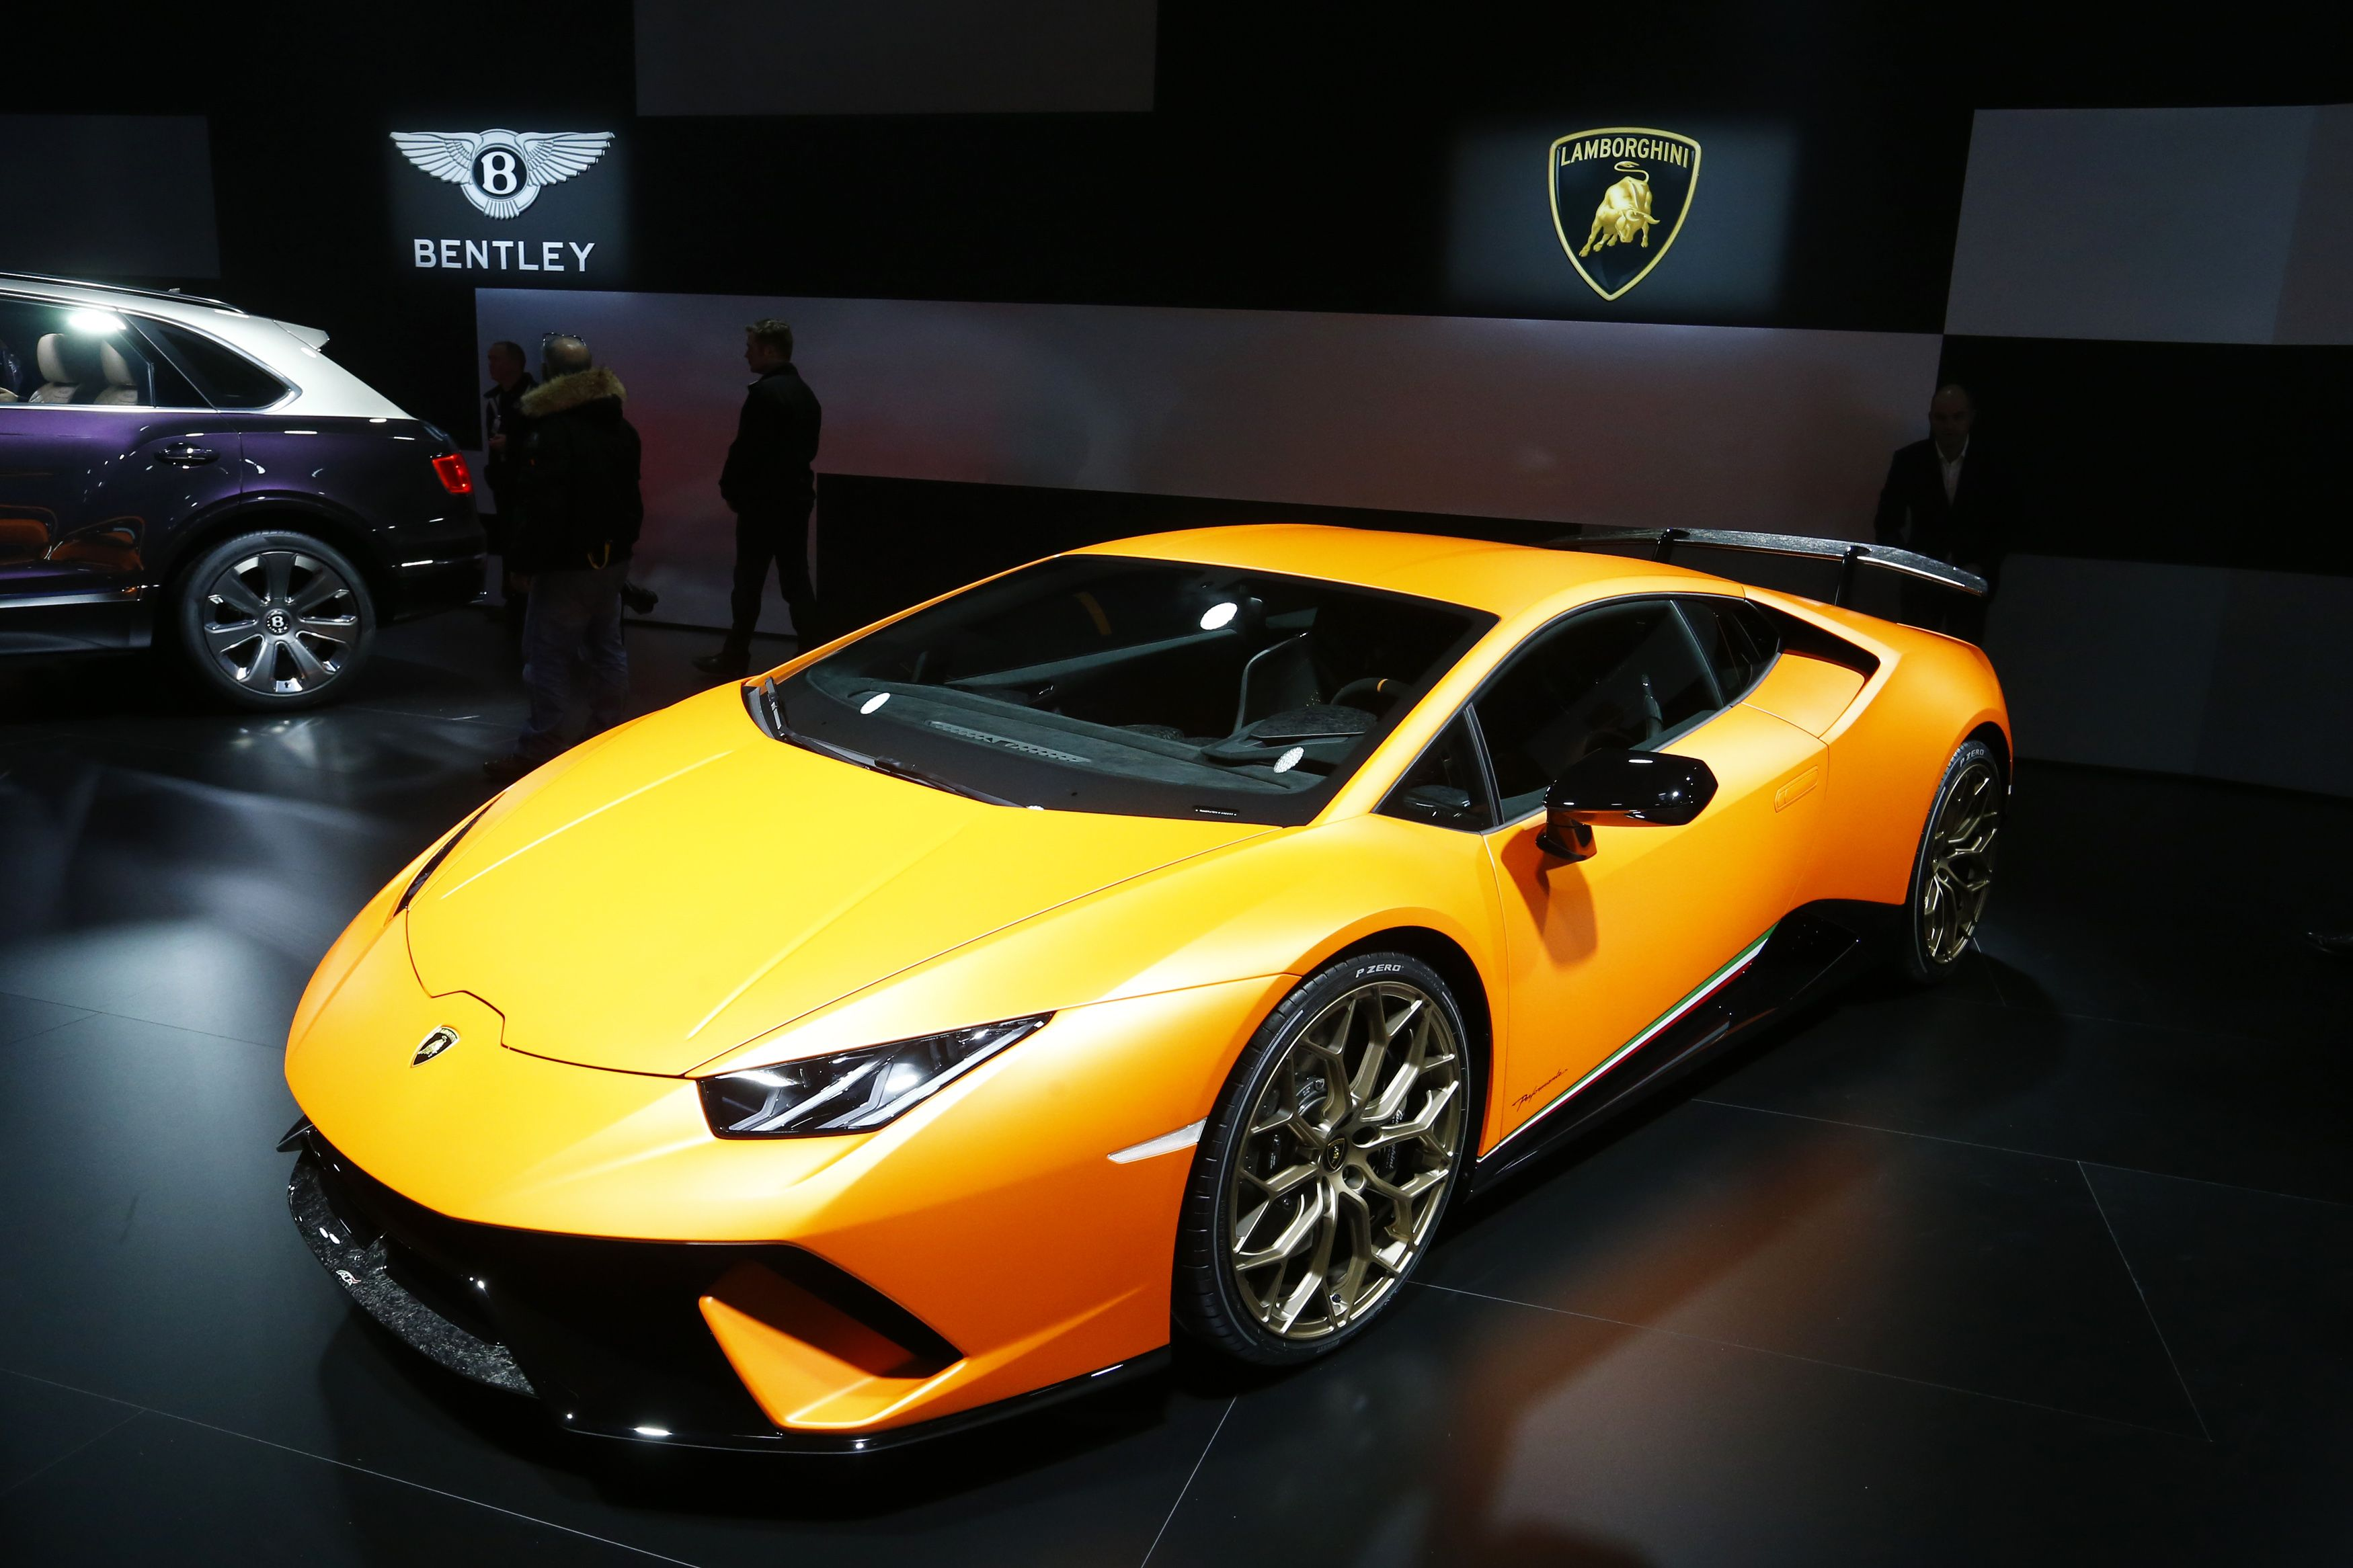 Lamborghini S Newest Super Car Just Set A Speed Record Super Cars Sports Cars Luxury Geneva Motor Show